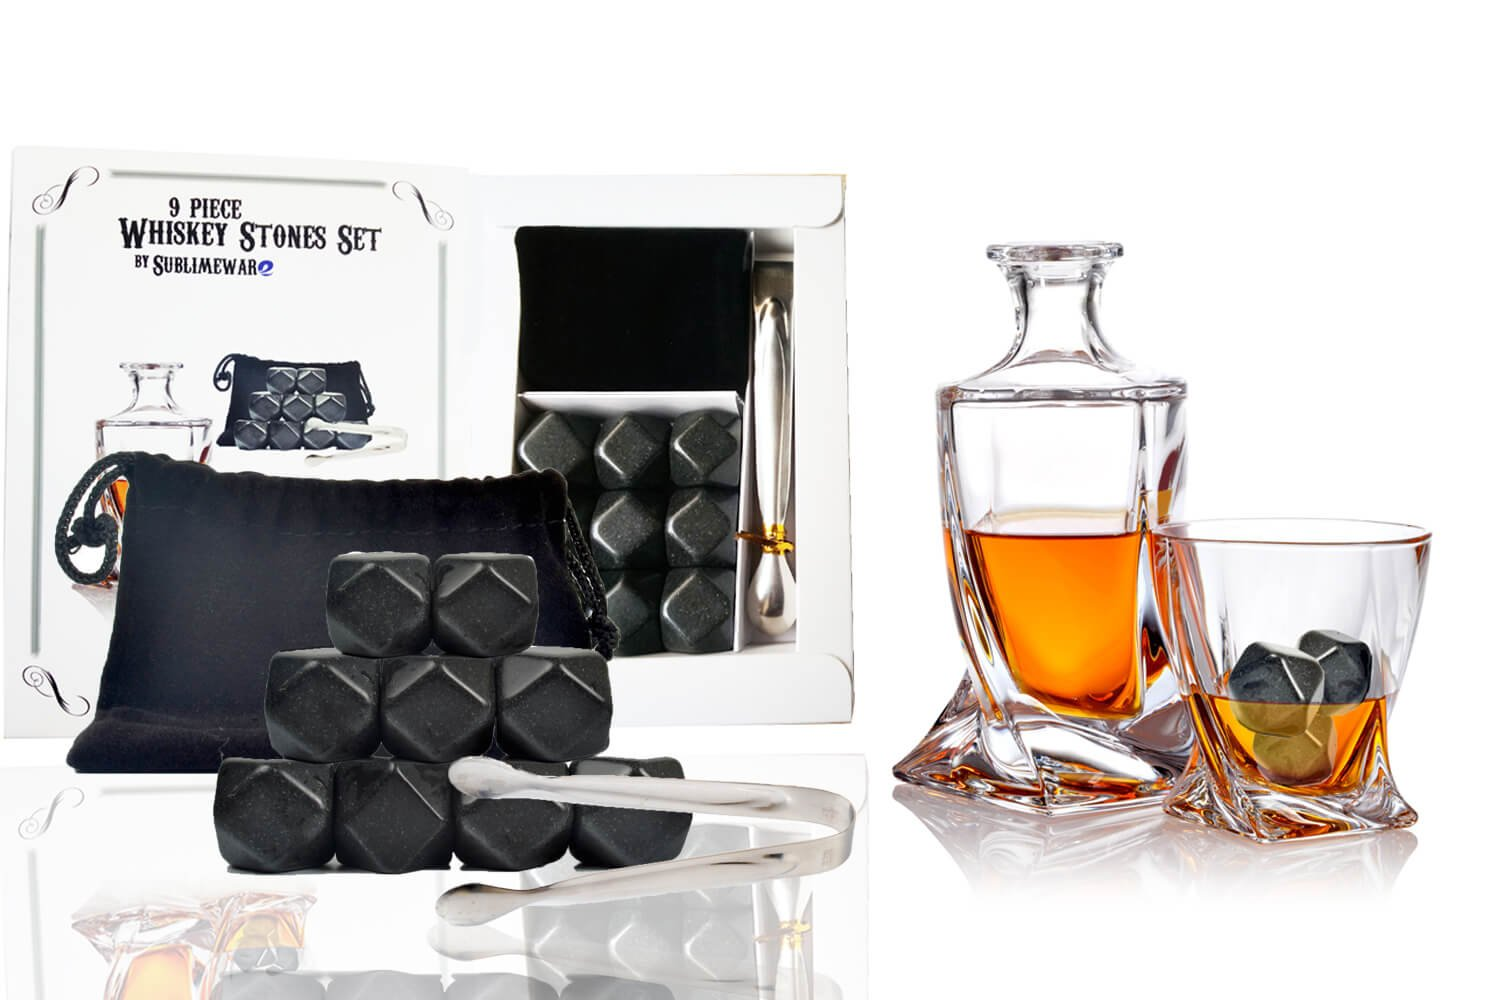 Whiskey rocks 9 pcs diamond shaped granite w/tongs - sipping bourbon alcohol wiskey wine chilling chilled reusable ice - doesn't melt dilute drinks - best whiskey stones set - by Sublimeware